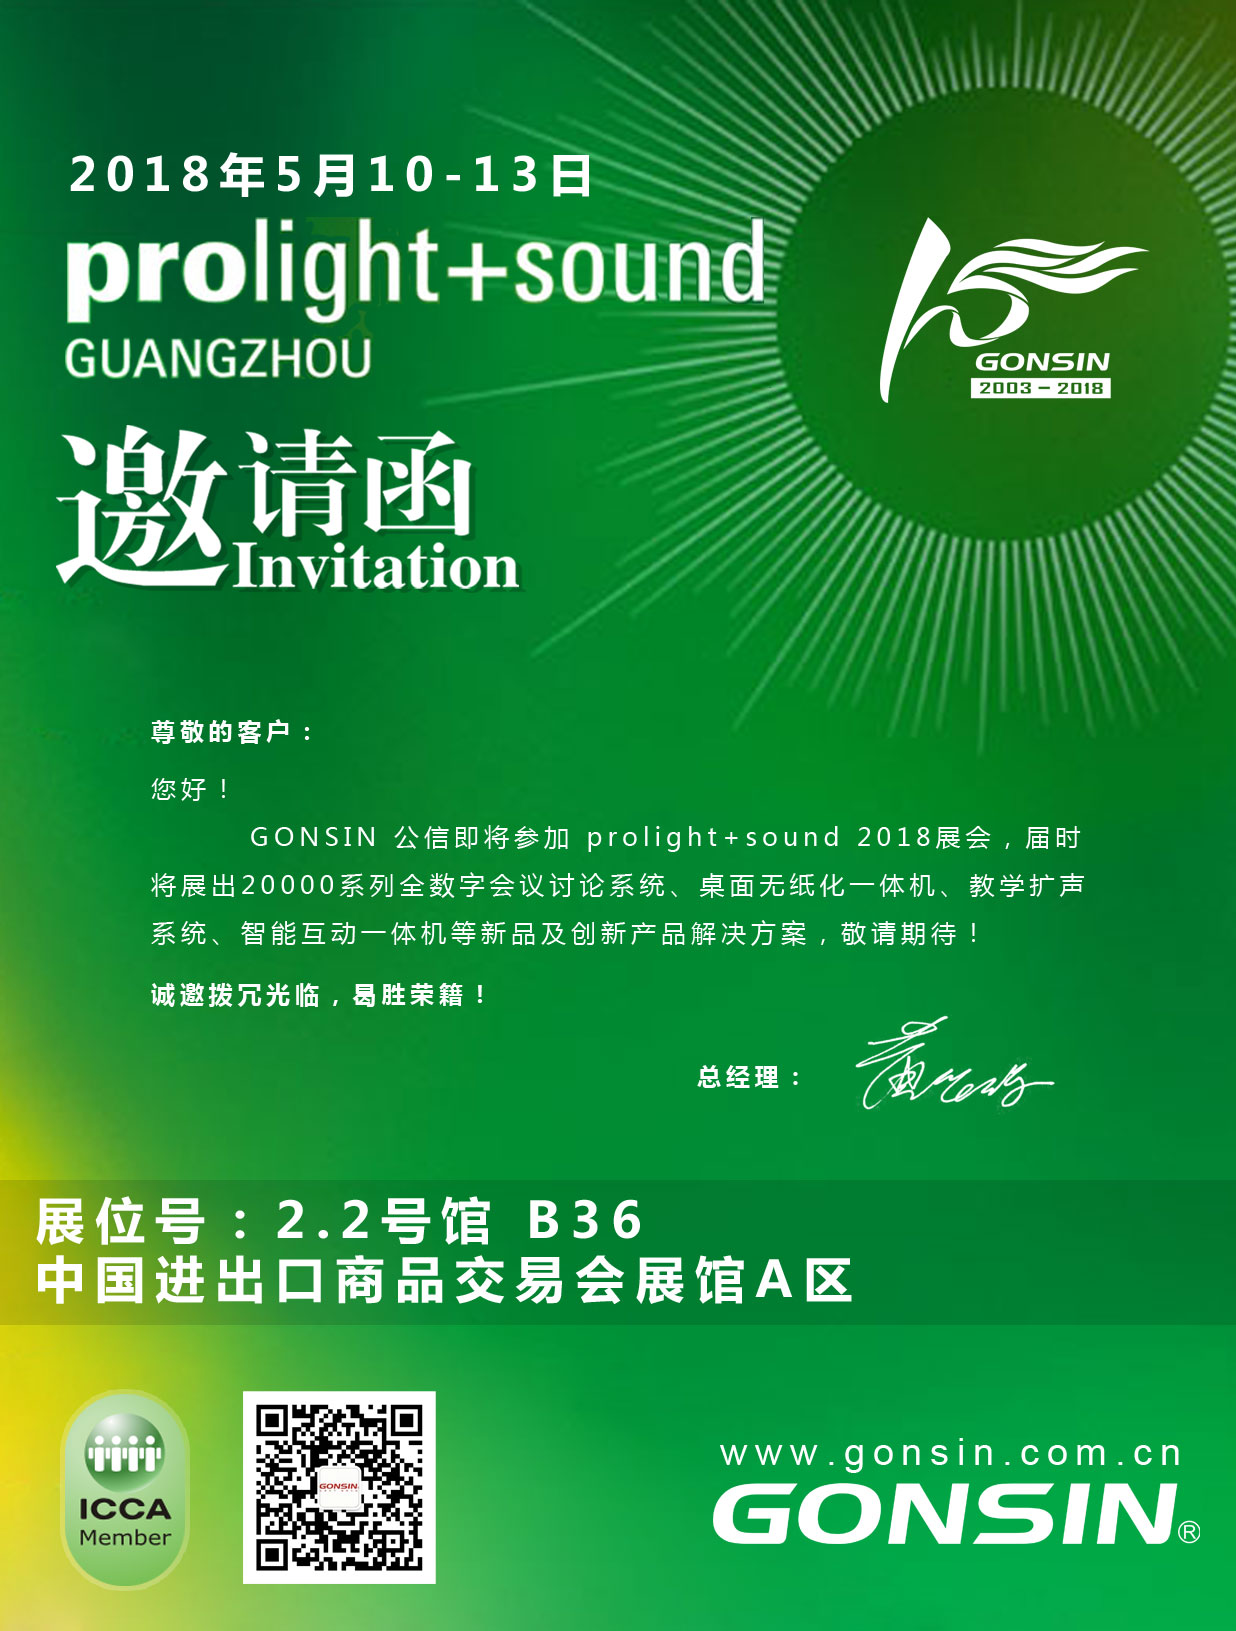 We Sincerely Invite You to Join Guangzhou International Professional Light and Sound Exhibition 2018